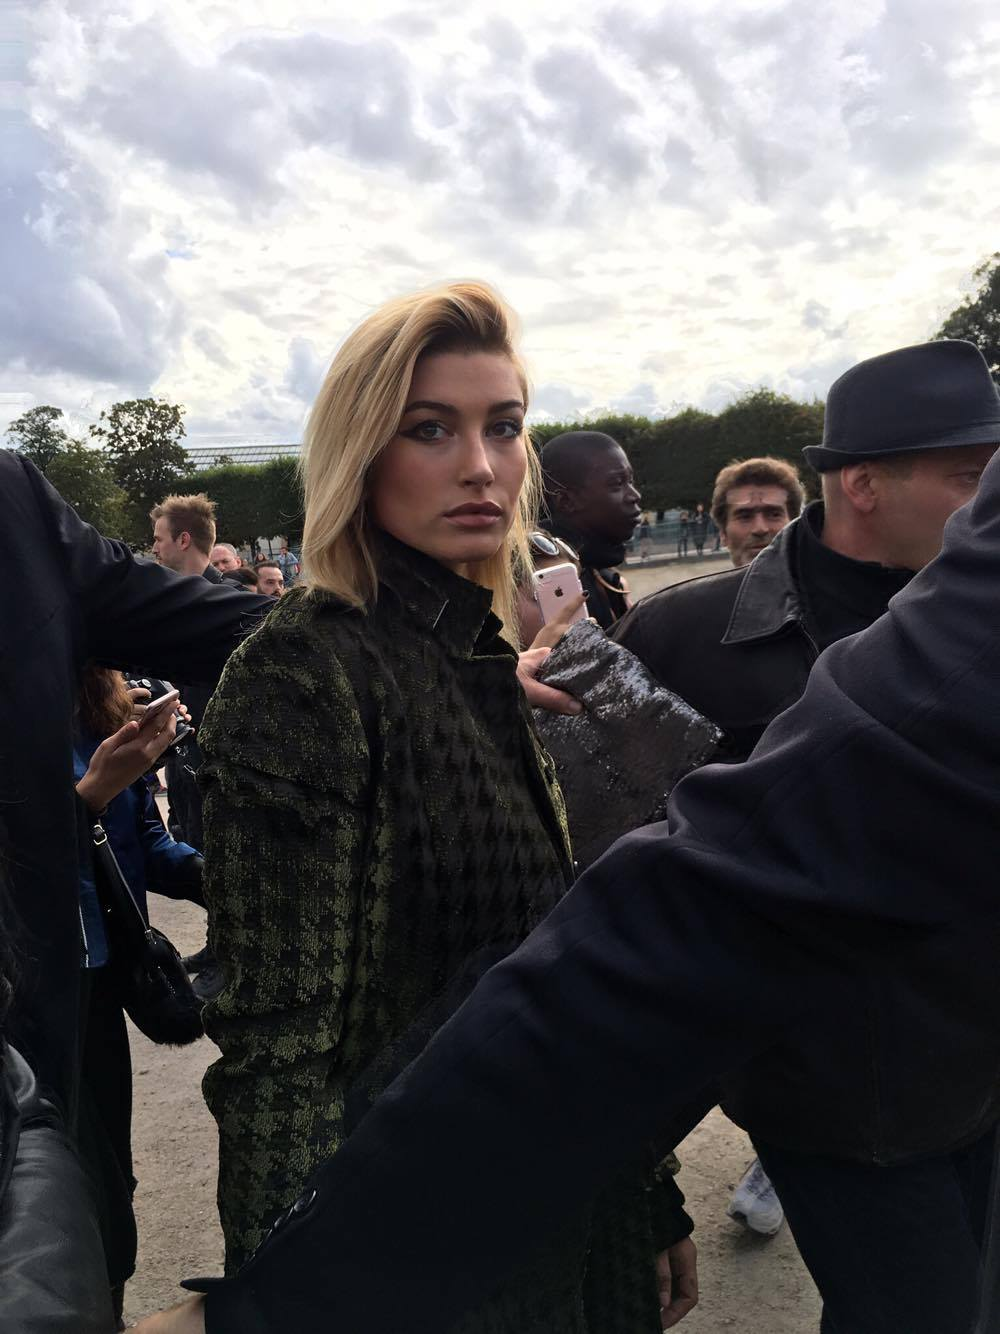 Hailey Baldwin was one of many spotted at Fashion Week in Paris.